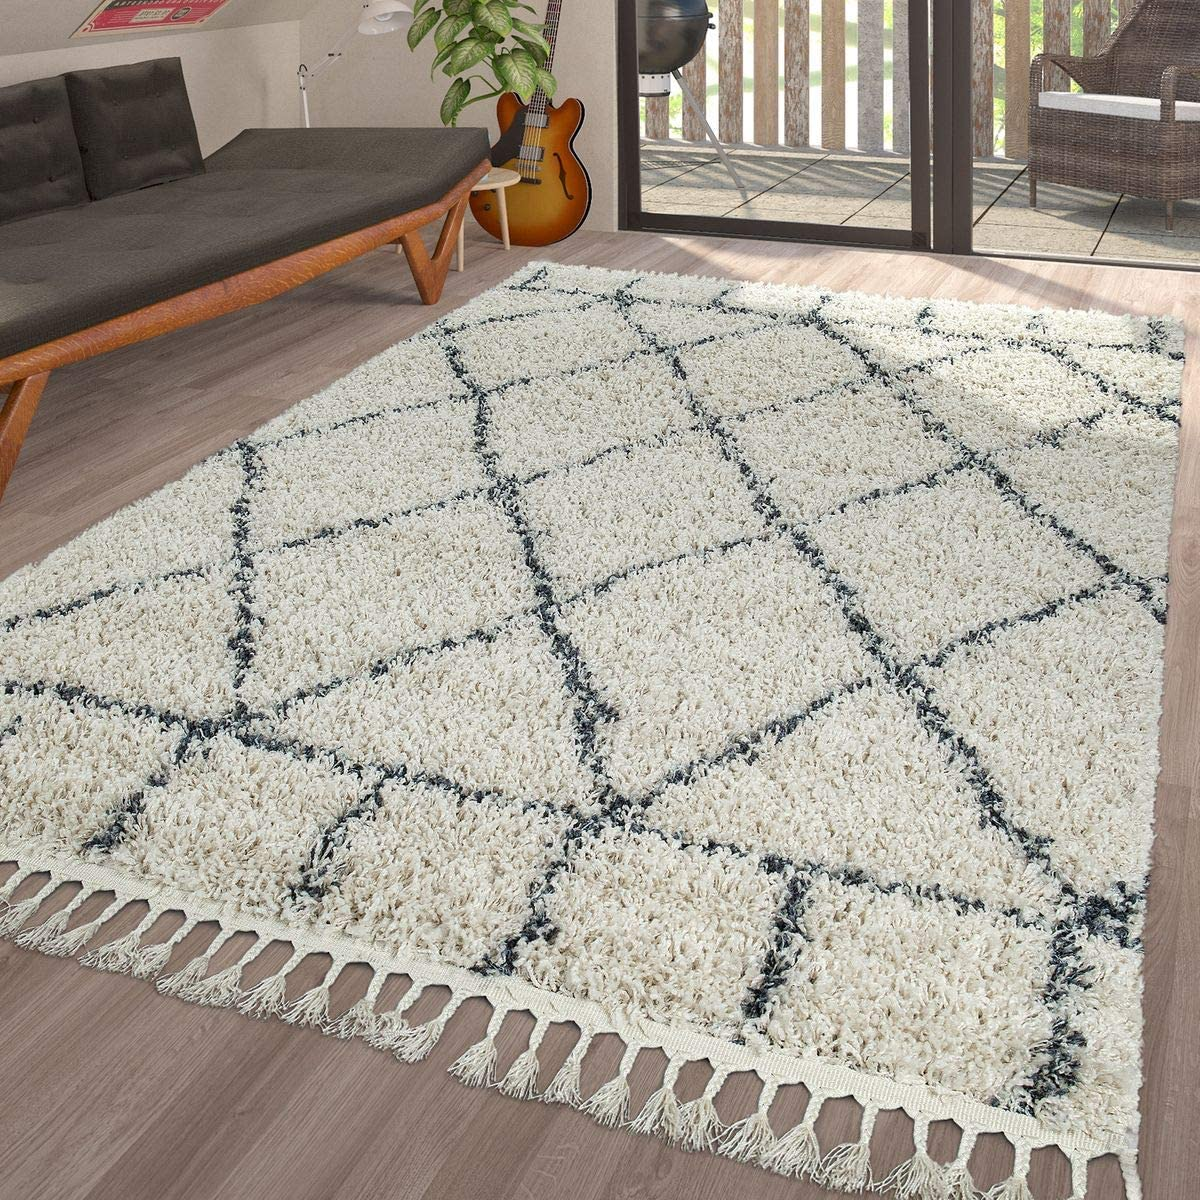 Rug Living Room Shaggy Modern Diamond Pattern Deep Pile Diamonds in Cream Blue, Size 2 x 3 3